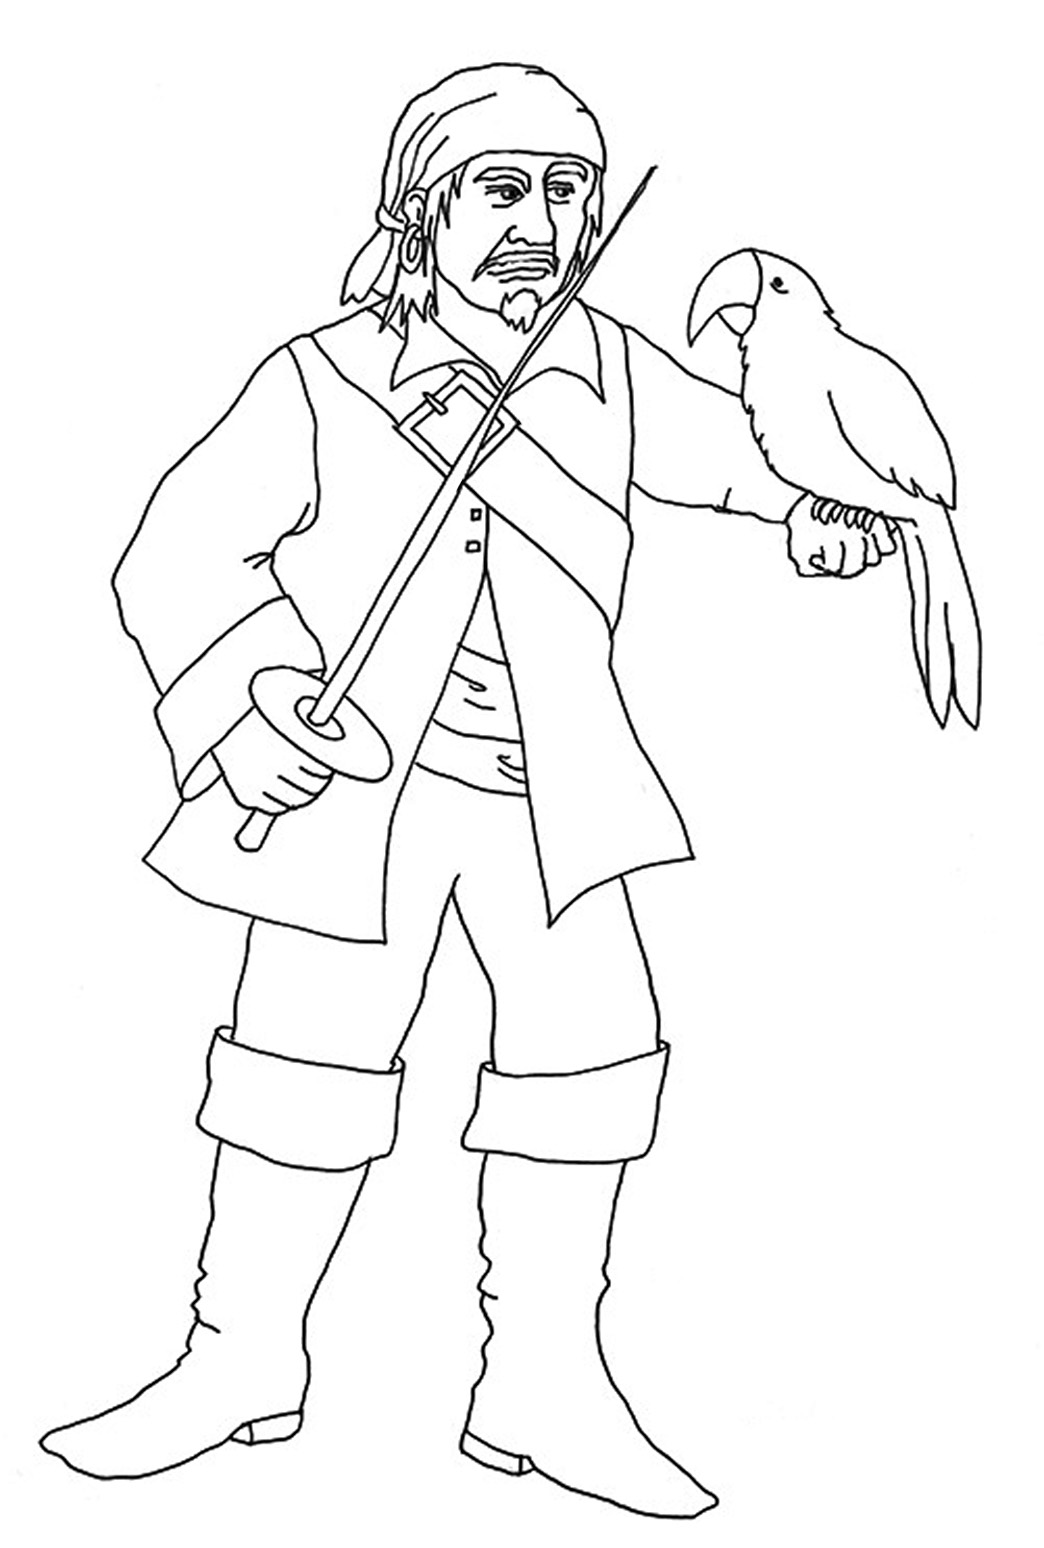 pirates coloring pages pirate coloring pages to download and print for free pages coloring pirates